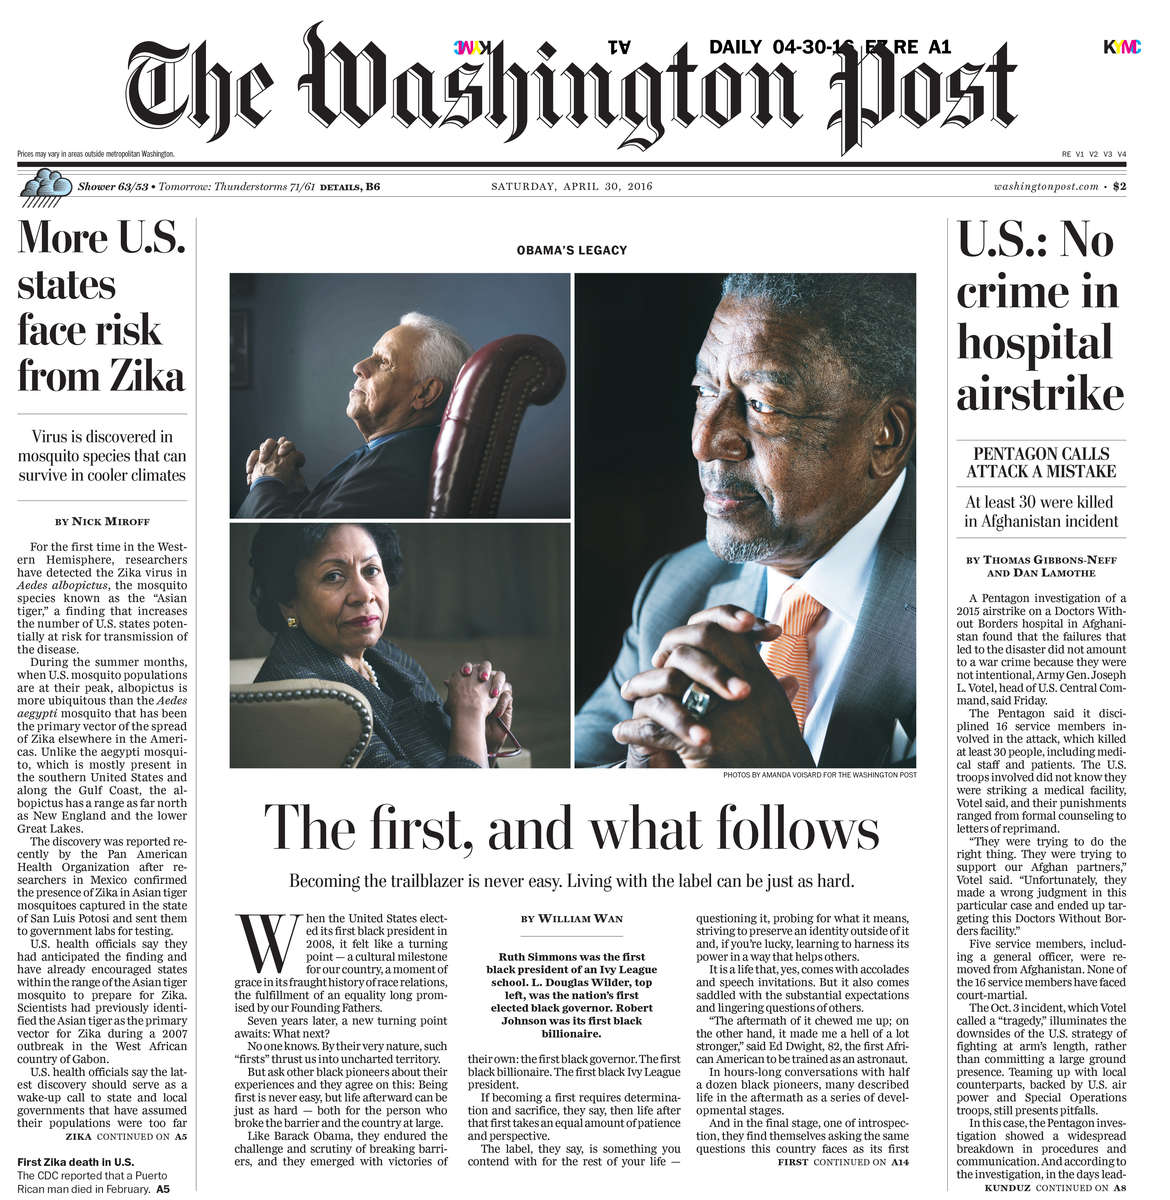 The Washington Post-Firsts